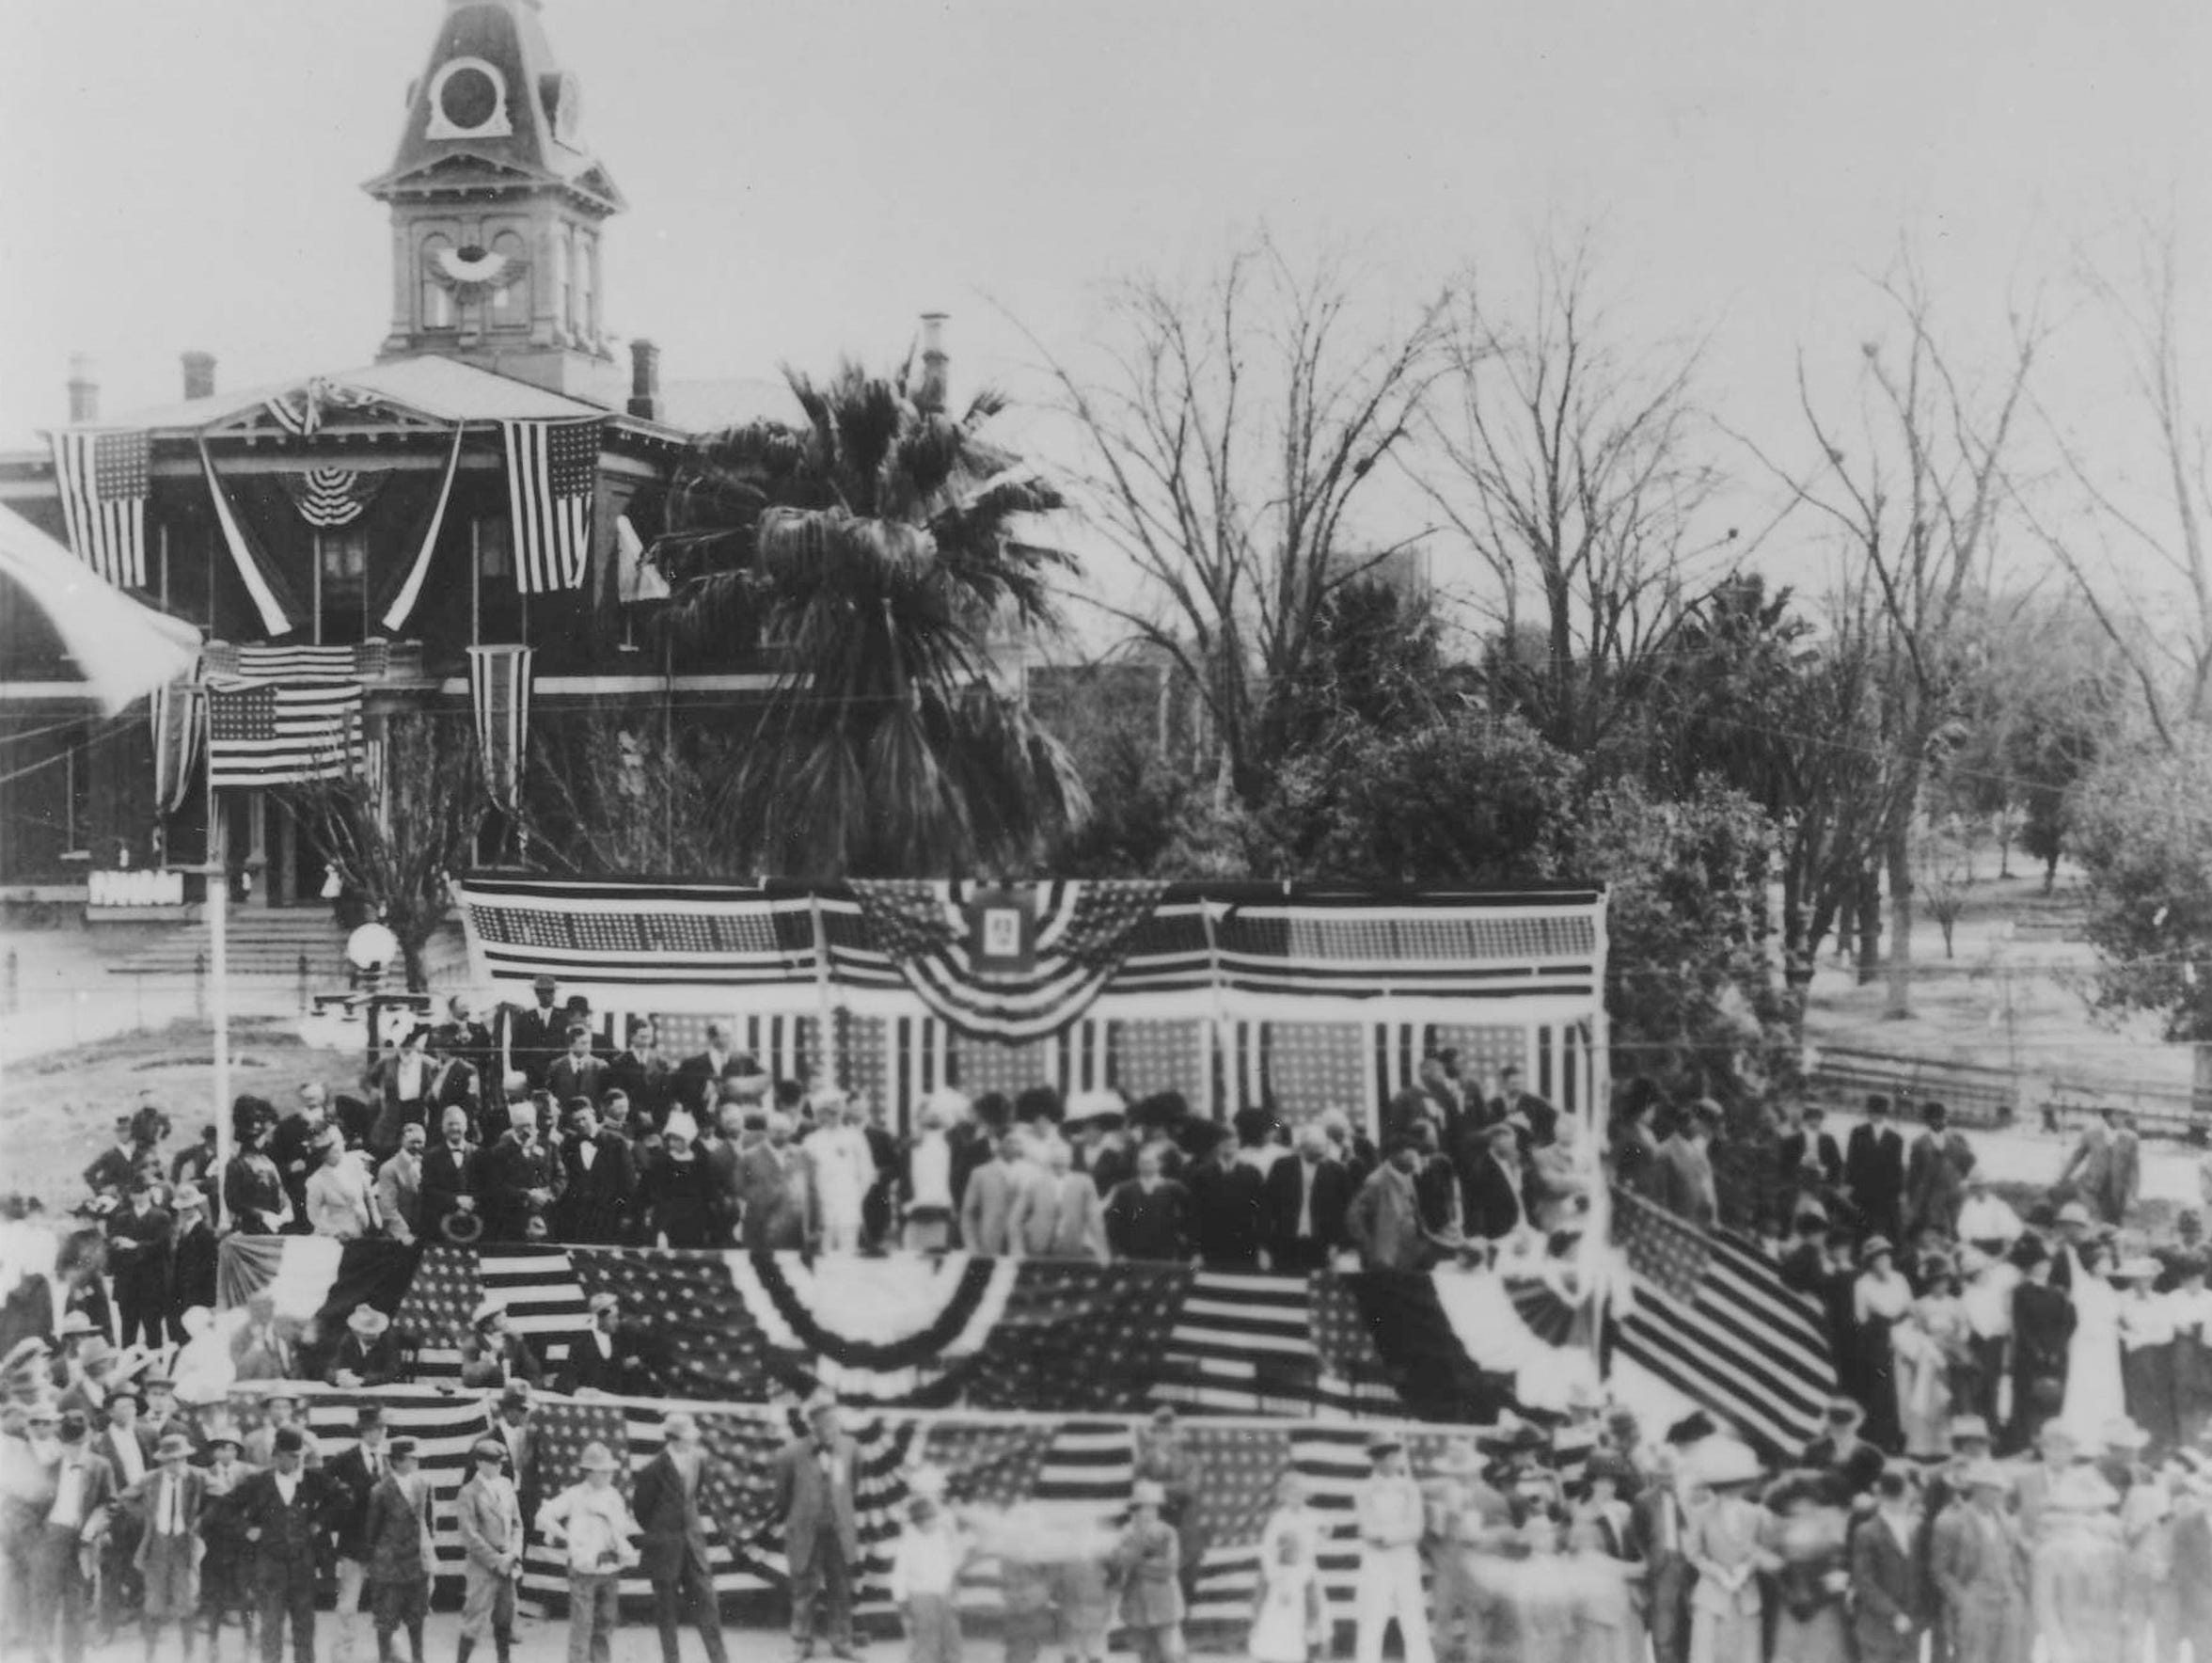 The inauguration of Arizona's first Governor George